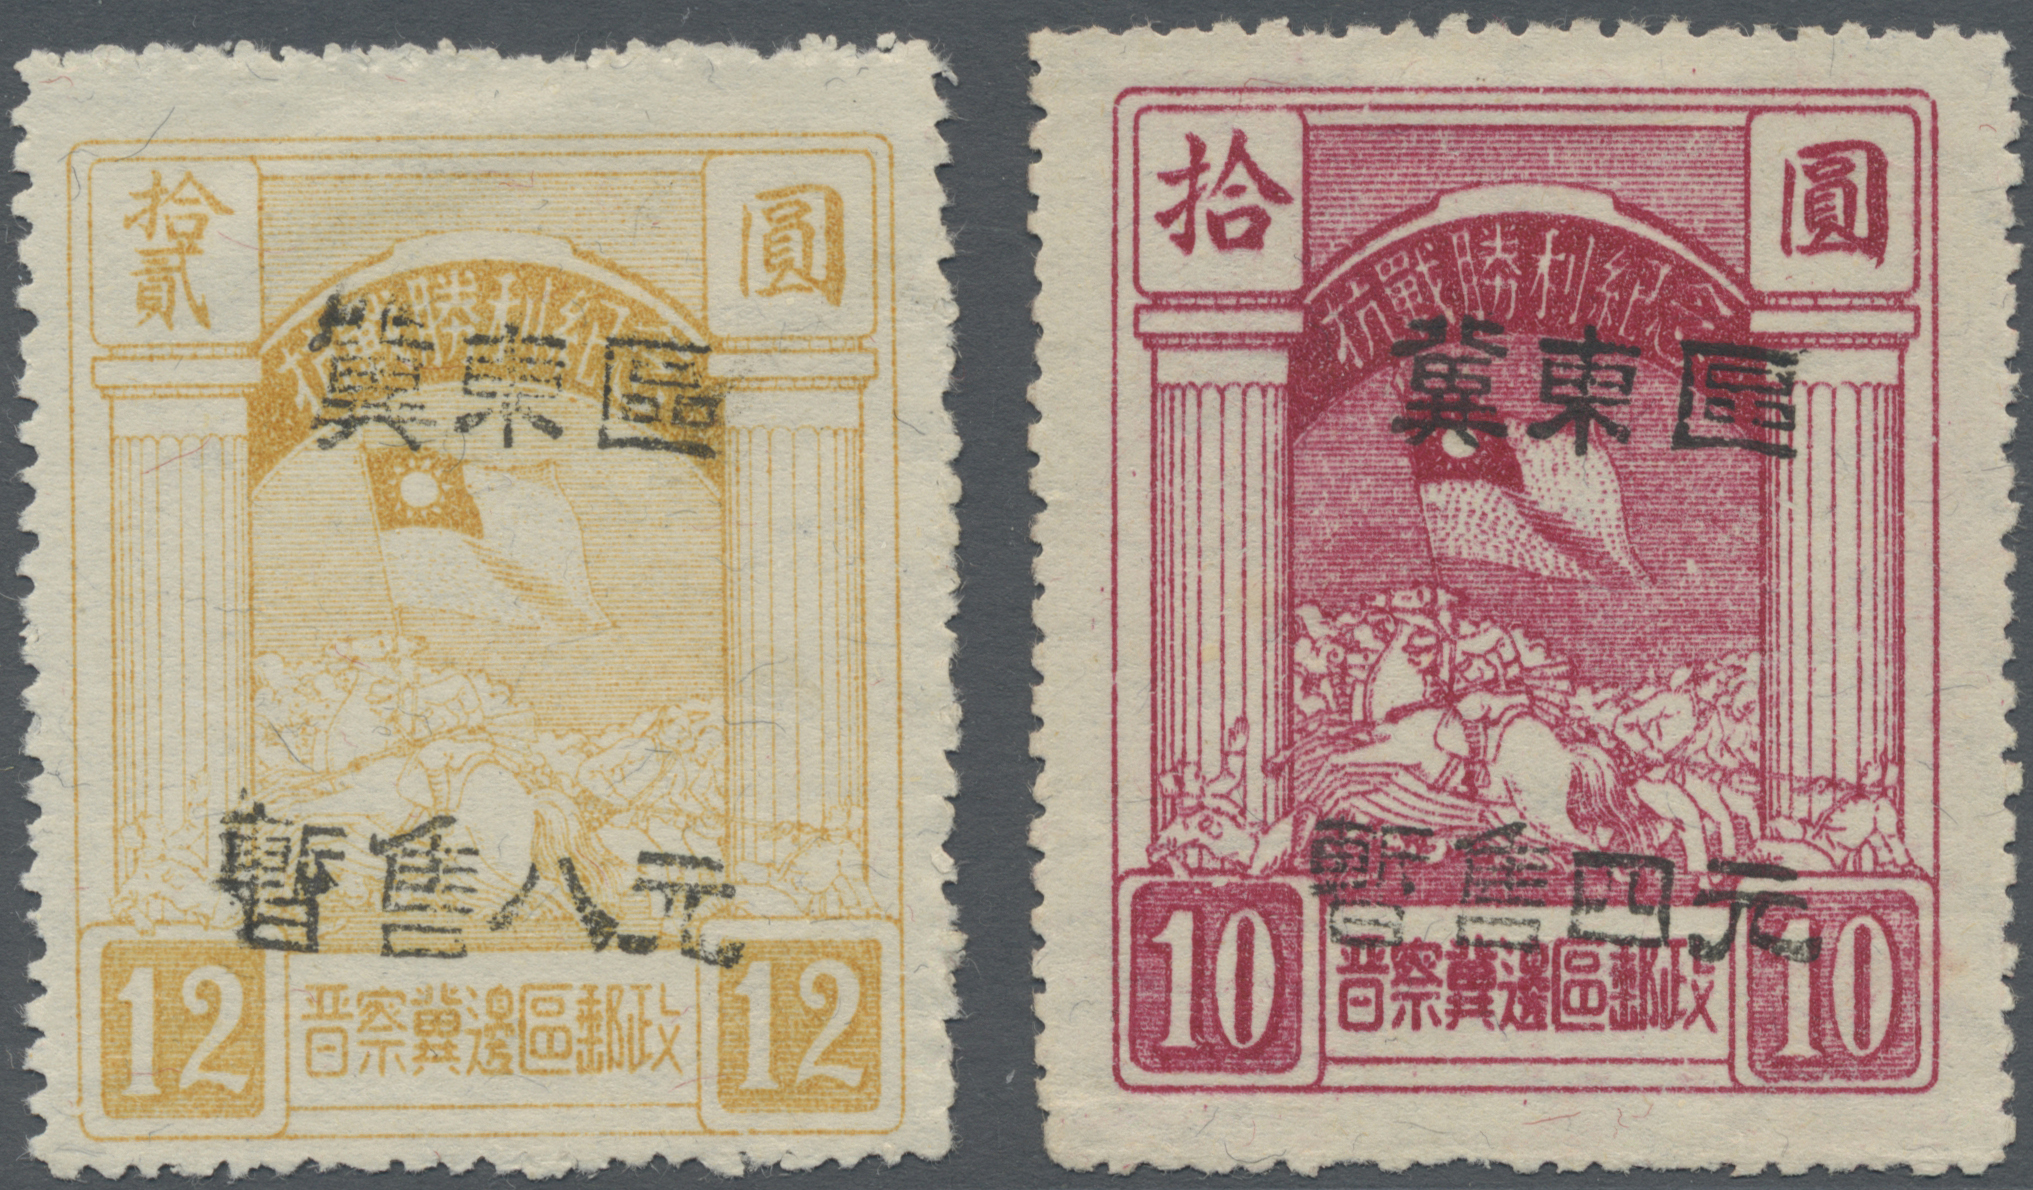 Lot 05019 - China - Volksrepublik - Provinzen  -  Auktionshaus Christoph Gärtner GmbH & Co. KG Sale #43 China & China - Liberated Areas, Day 3